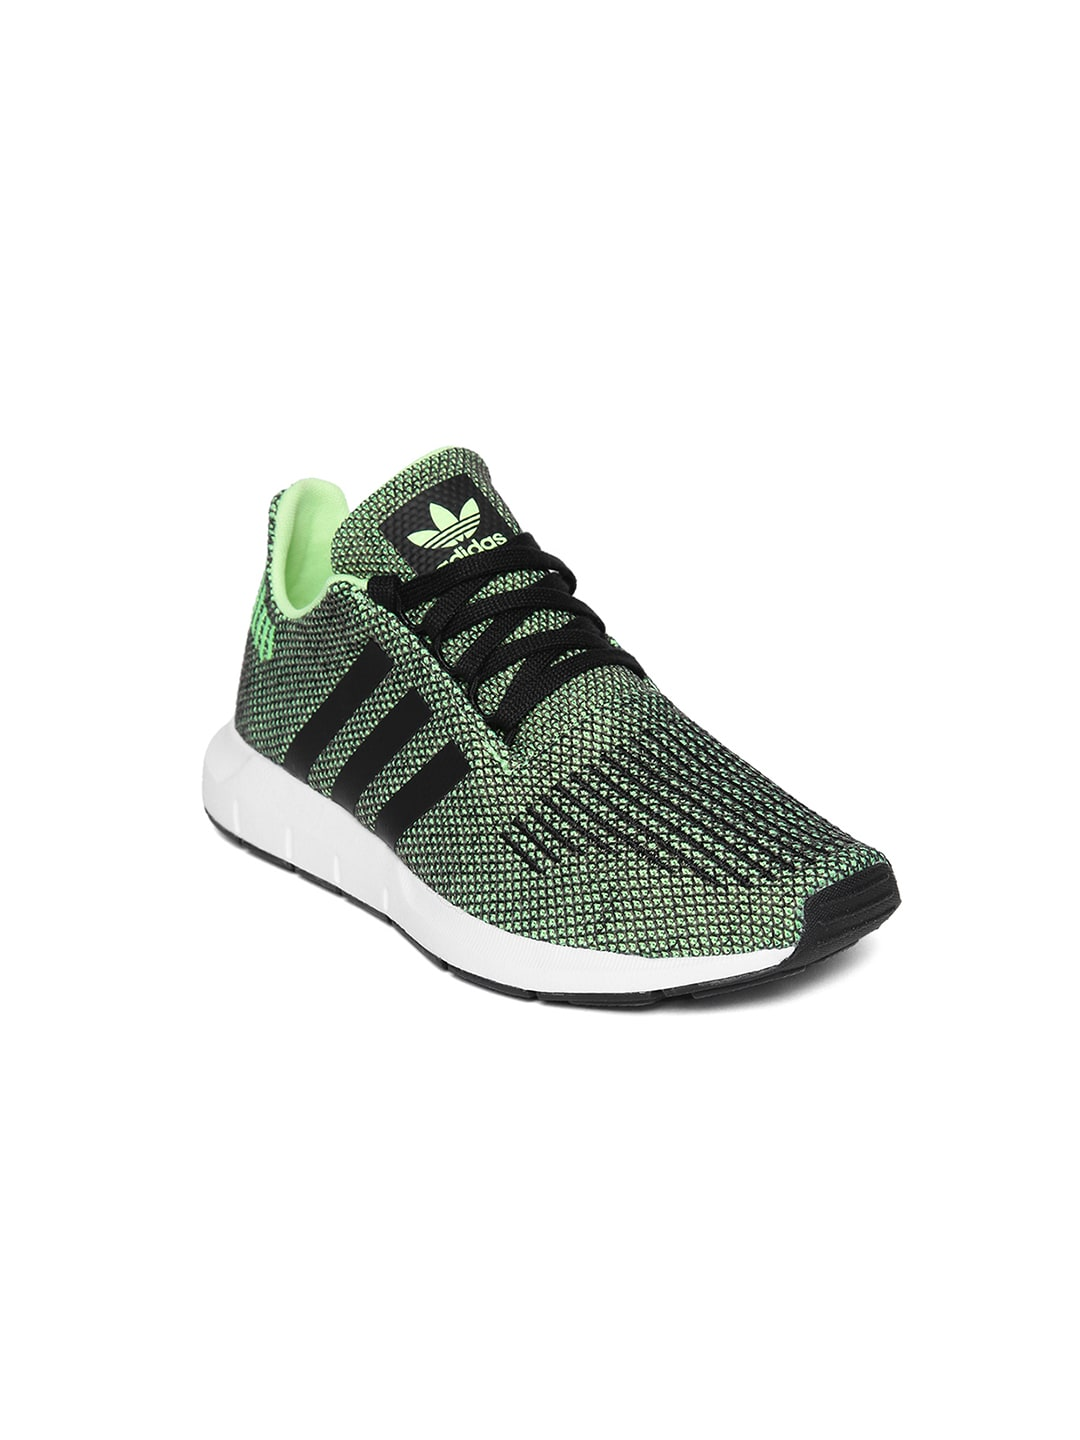 a16714898 adidas - Exclusive adidas Online Store in India at Myntra